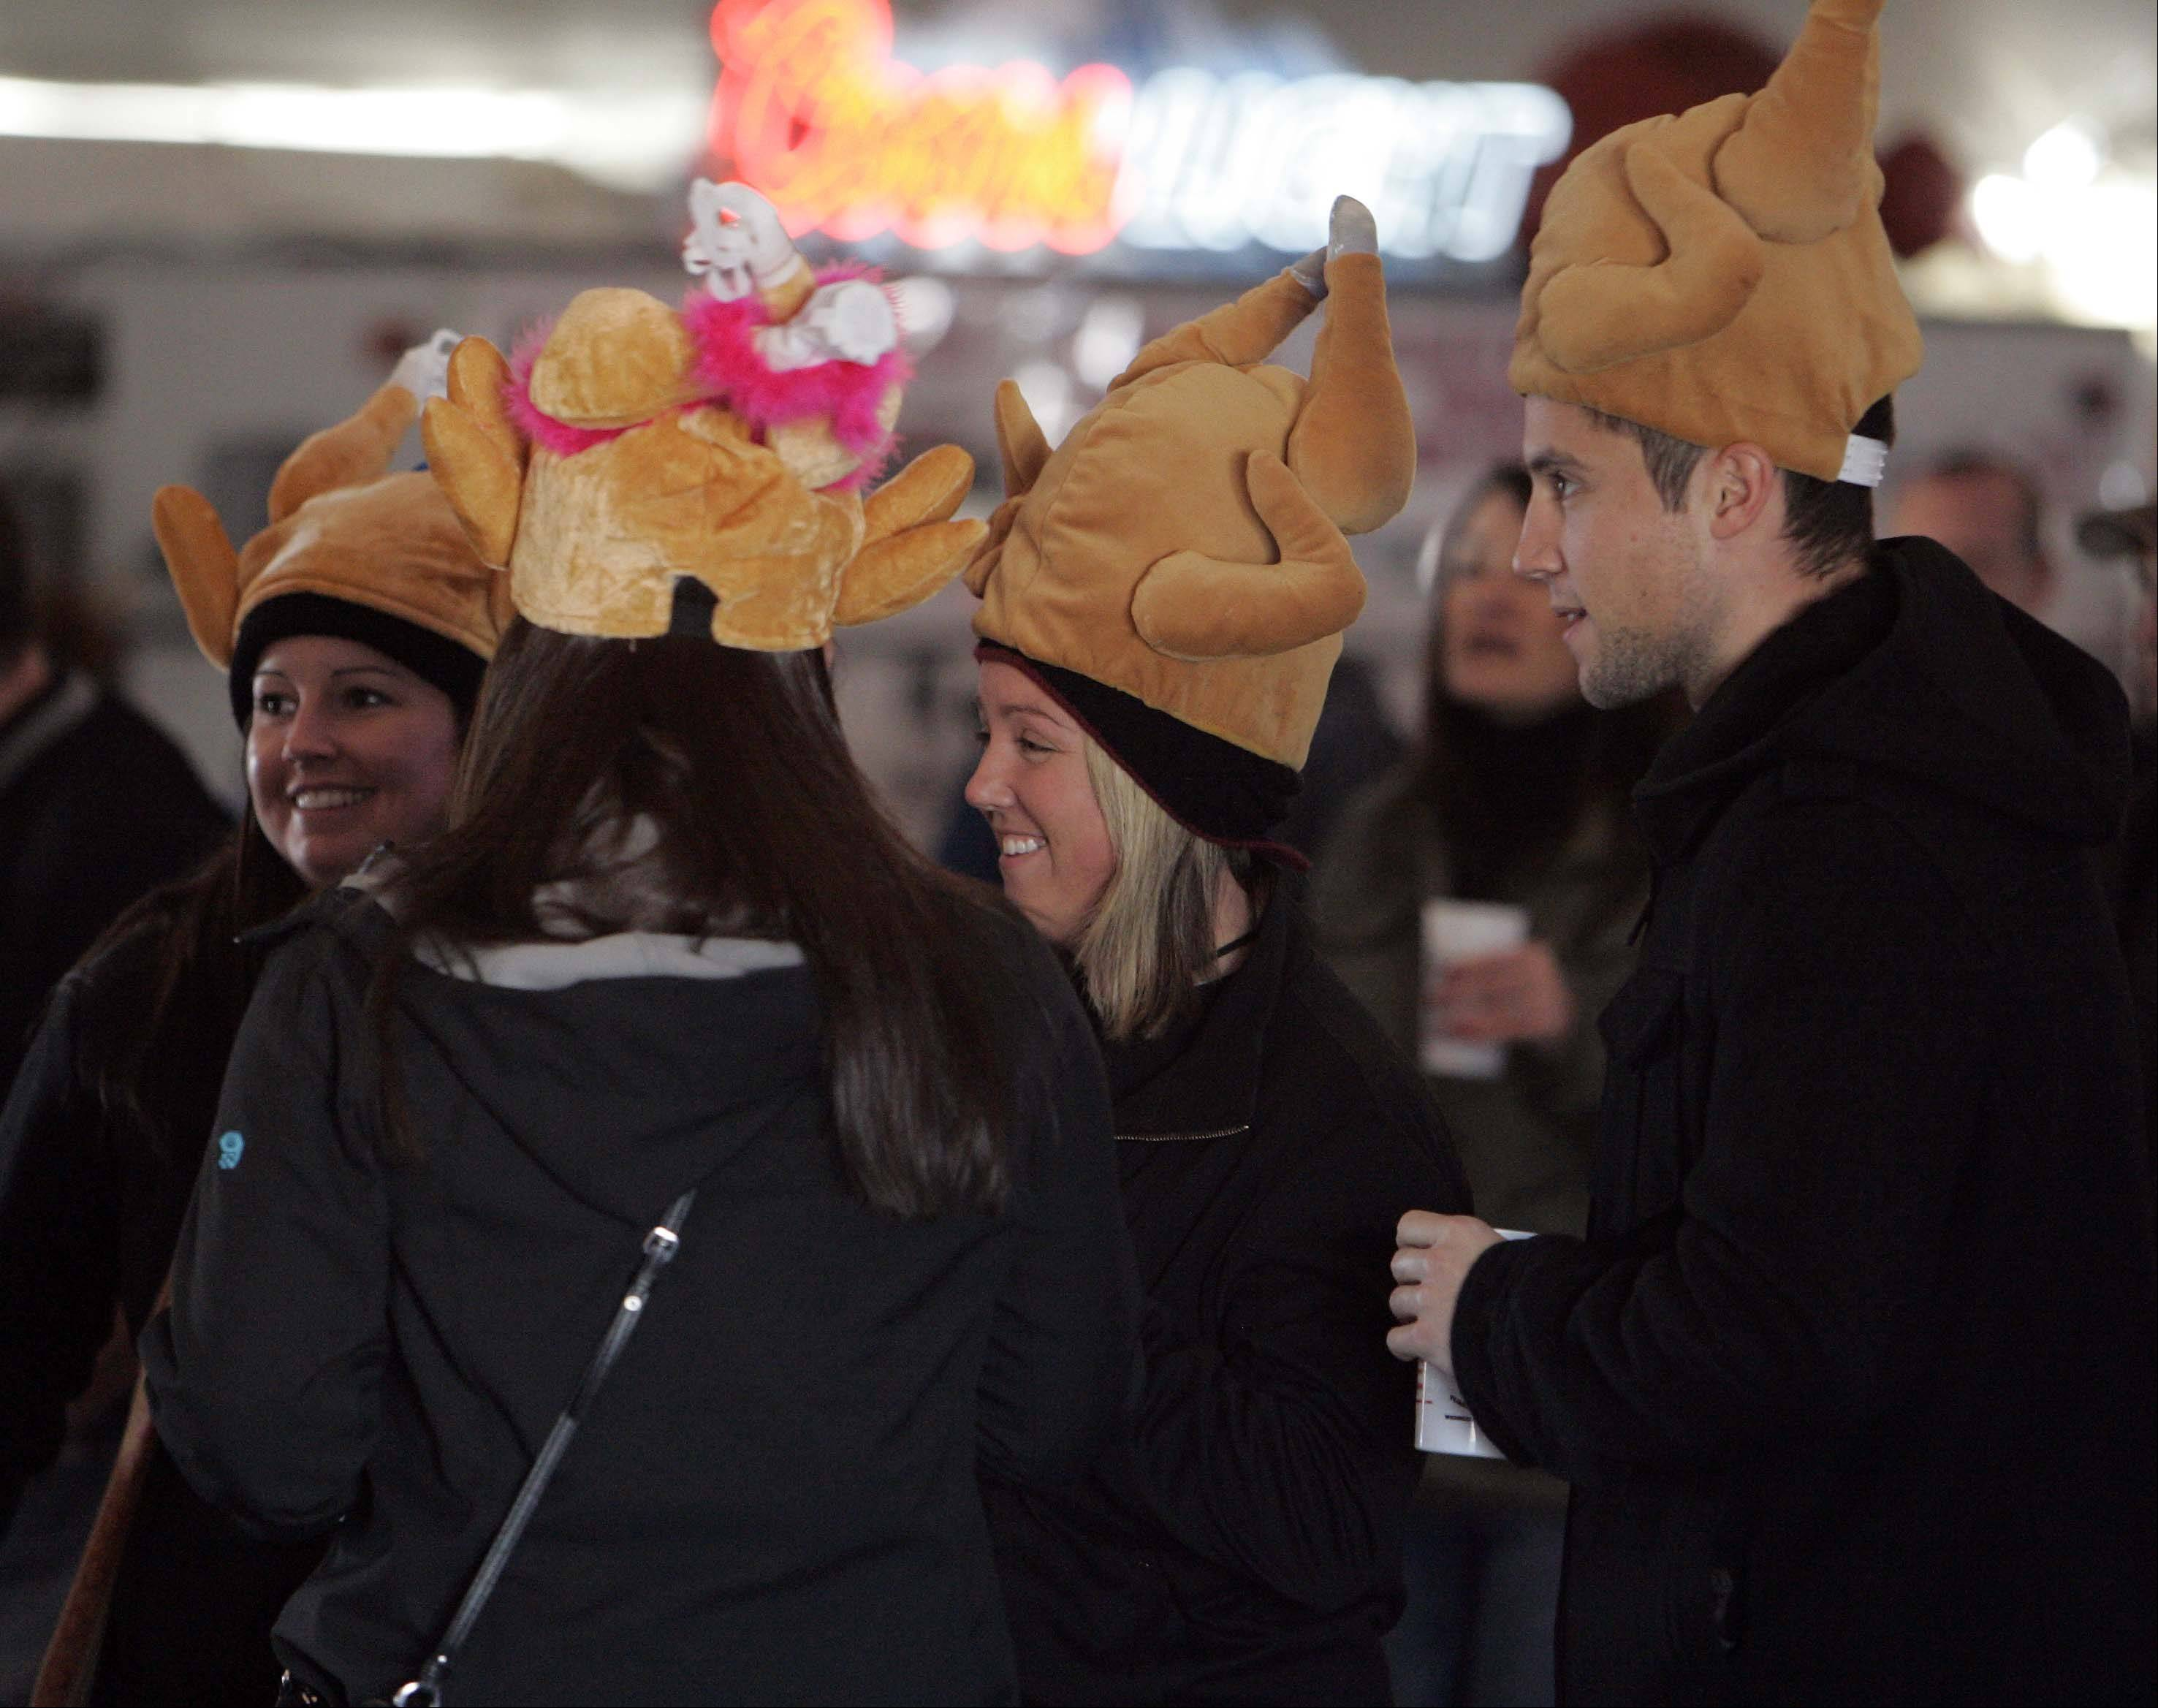 Kelsey Malmstead of St. Charles, from left, Amy Malmstead of Moline, (back to camera) Sara Haddox and her brother Patrick Haddox both of St. Charles, don turkey hats while enjoying a drink at the Turkey Testicle Festival in Huntley. Parkside Pub workers will fried up about 1,200 pounds of testicles this year during the pub's 30th annual festival. The organizers are hoping for 4,500 guests this year, which would beat an attendance record set in 2011.